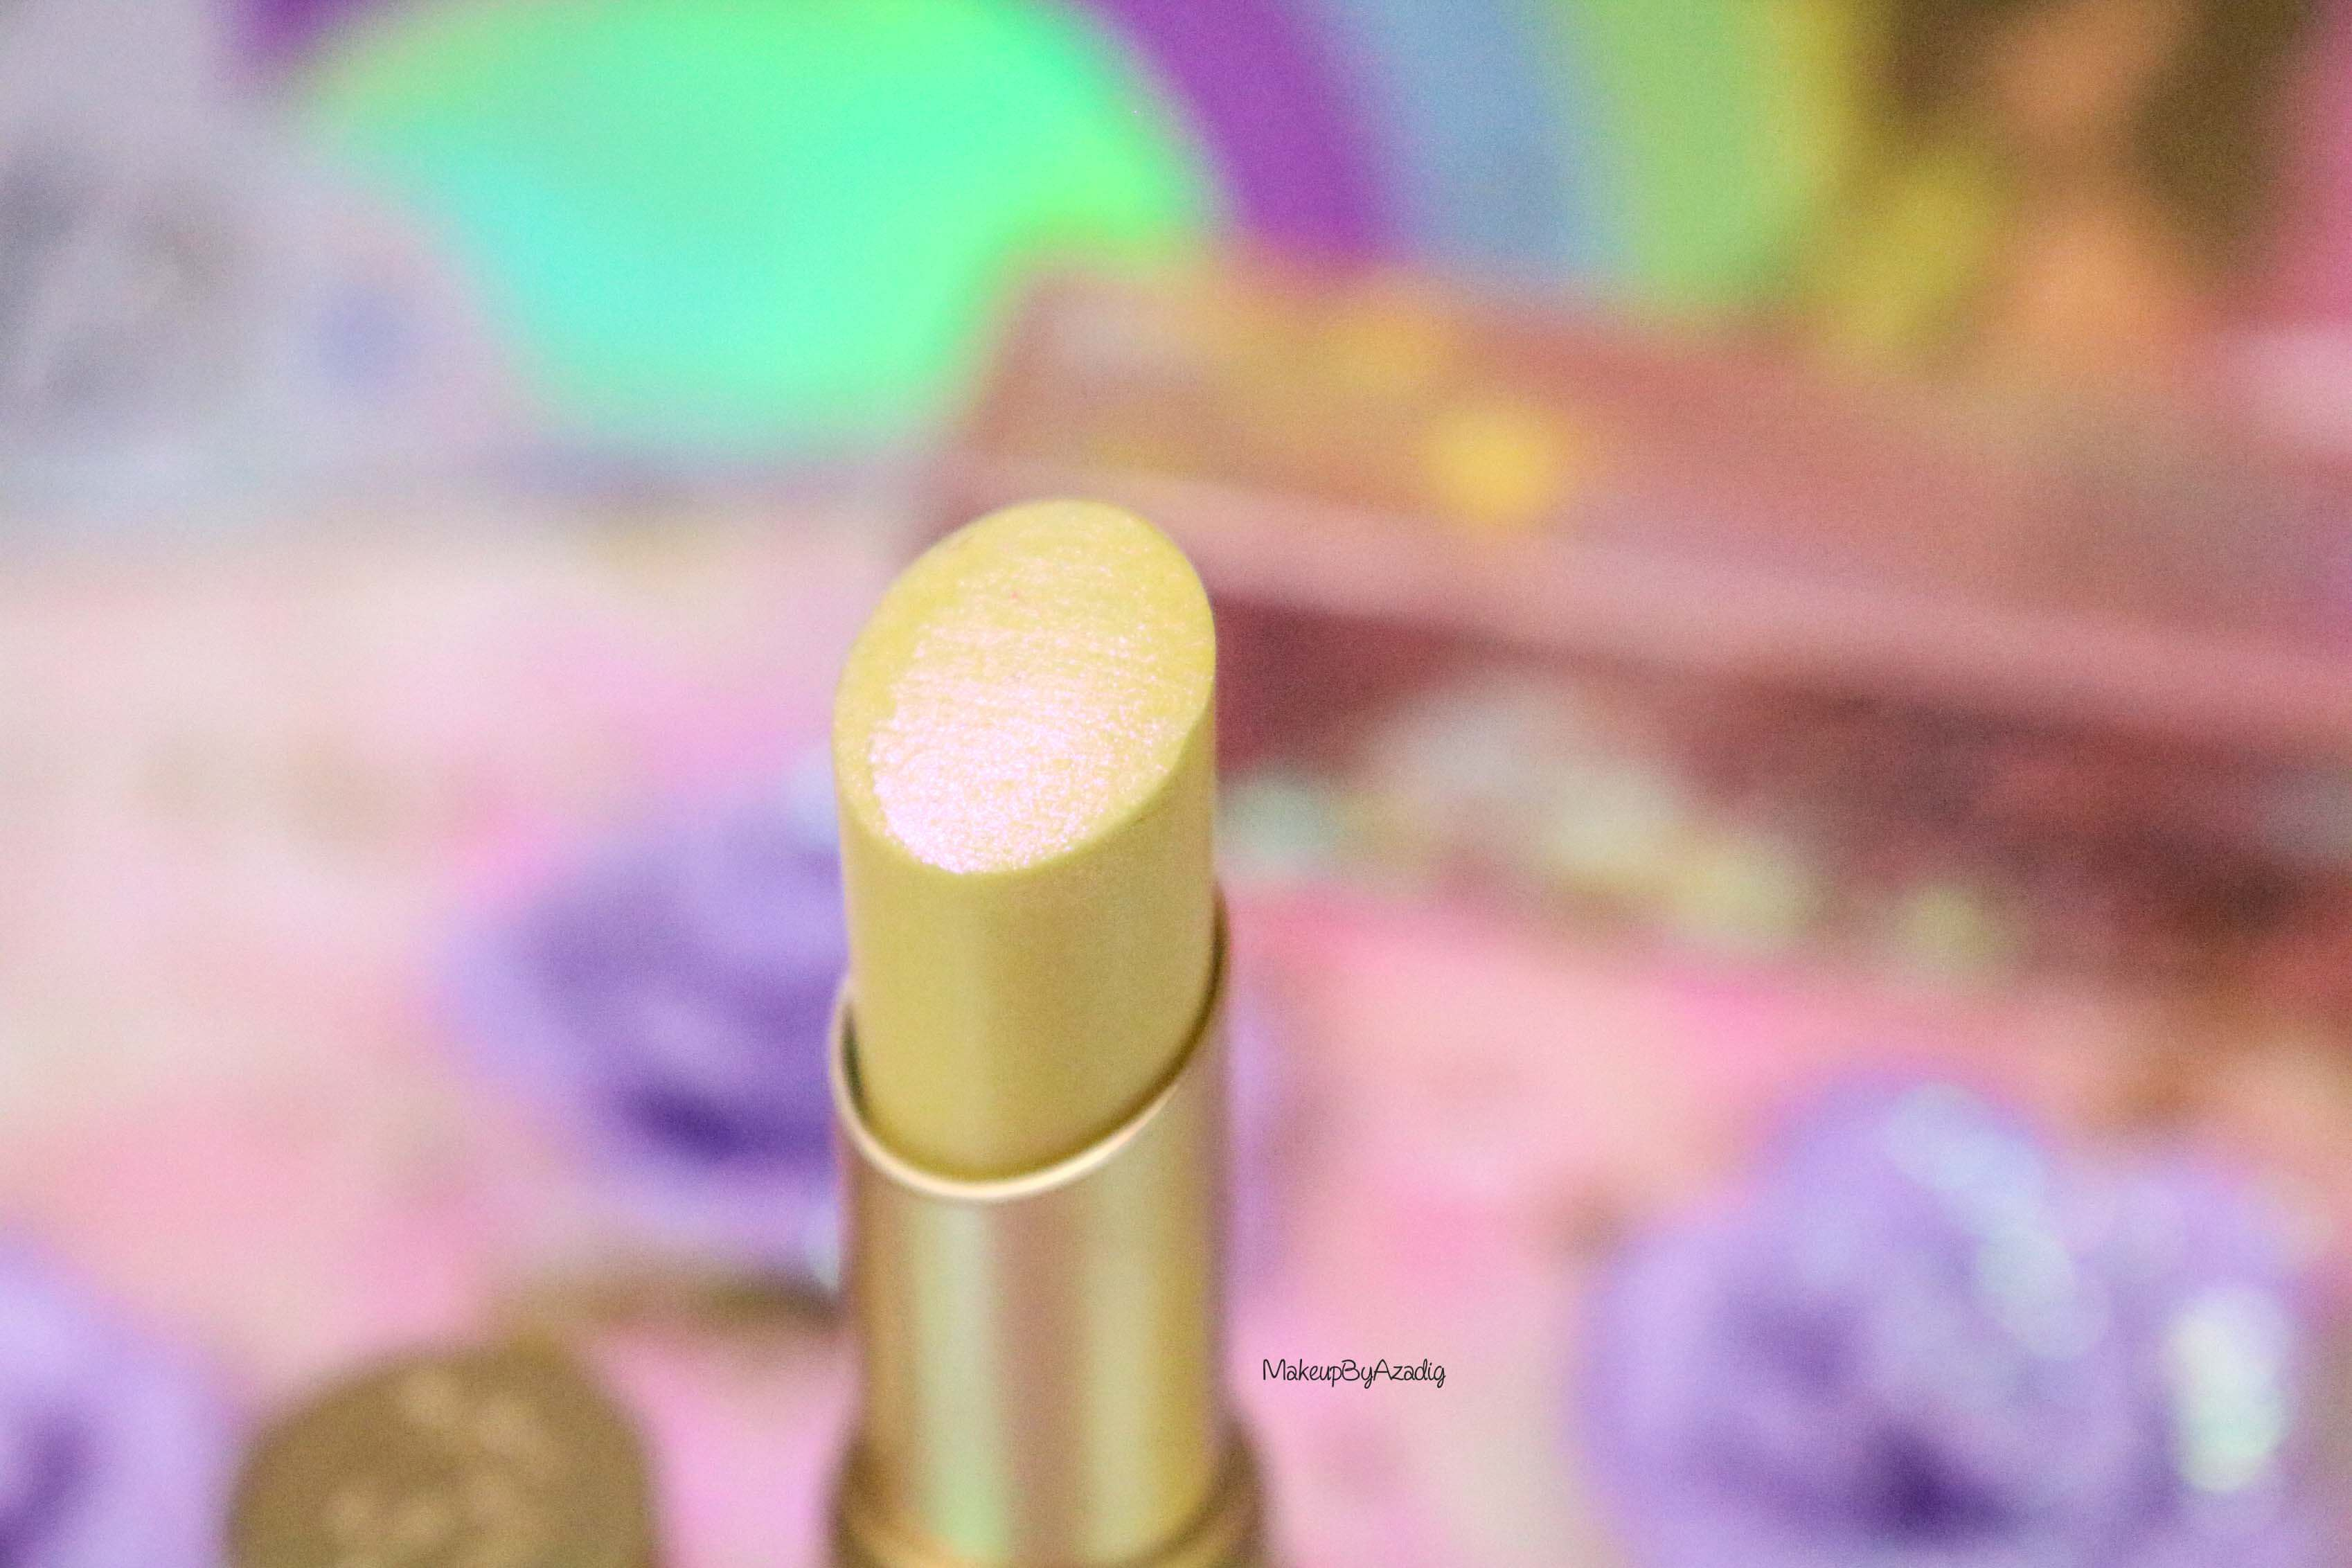 revue-review-mystical-lipstick-rouge-levres-magique-too-faced-avis-swatch-prix-france-makeupbyazadig-couleur